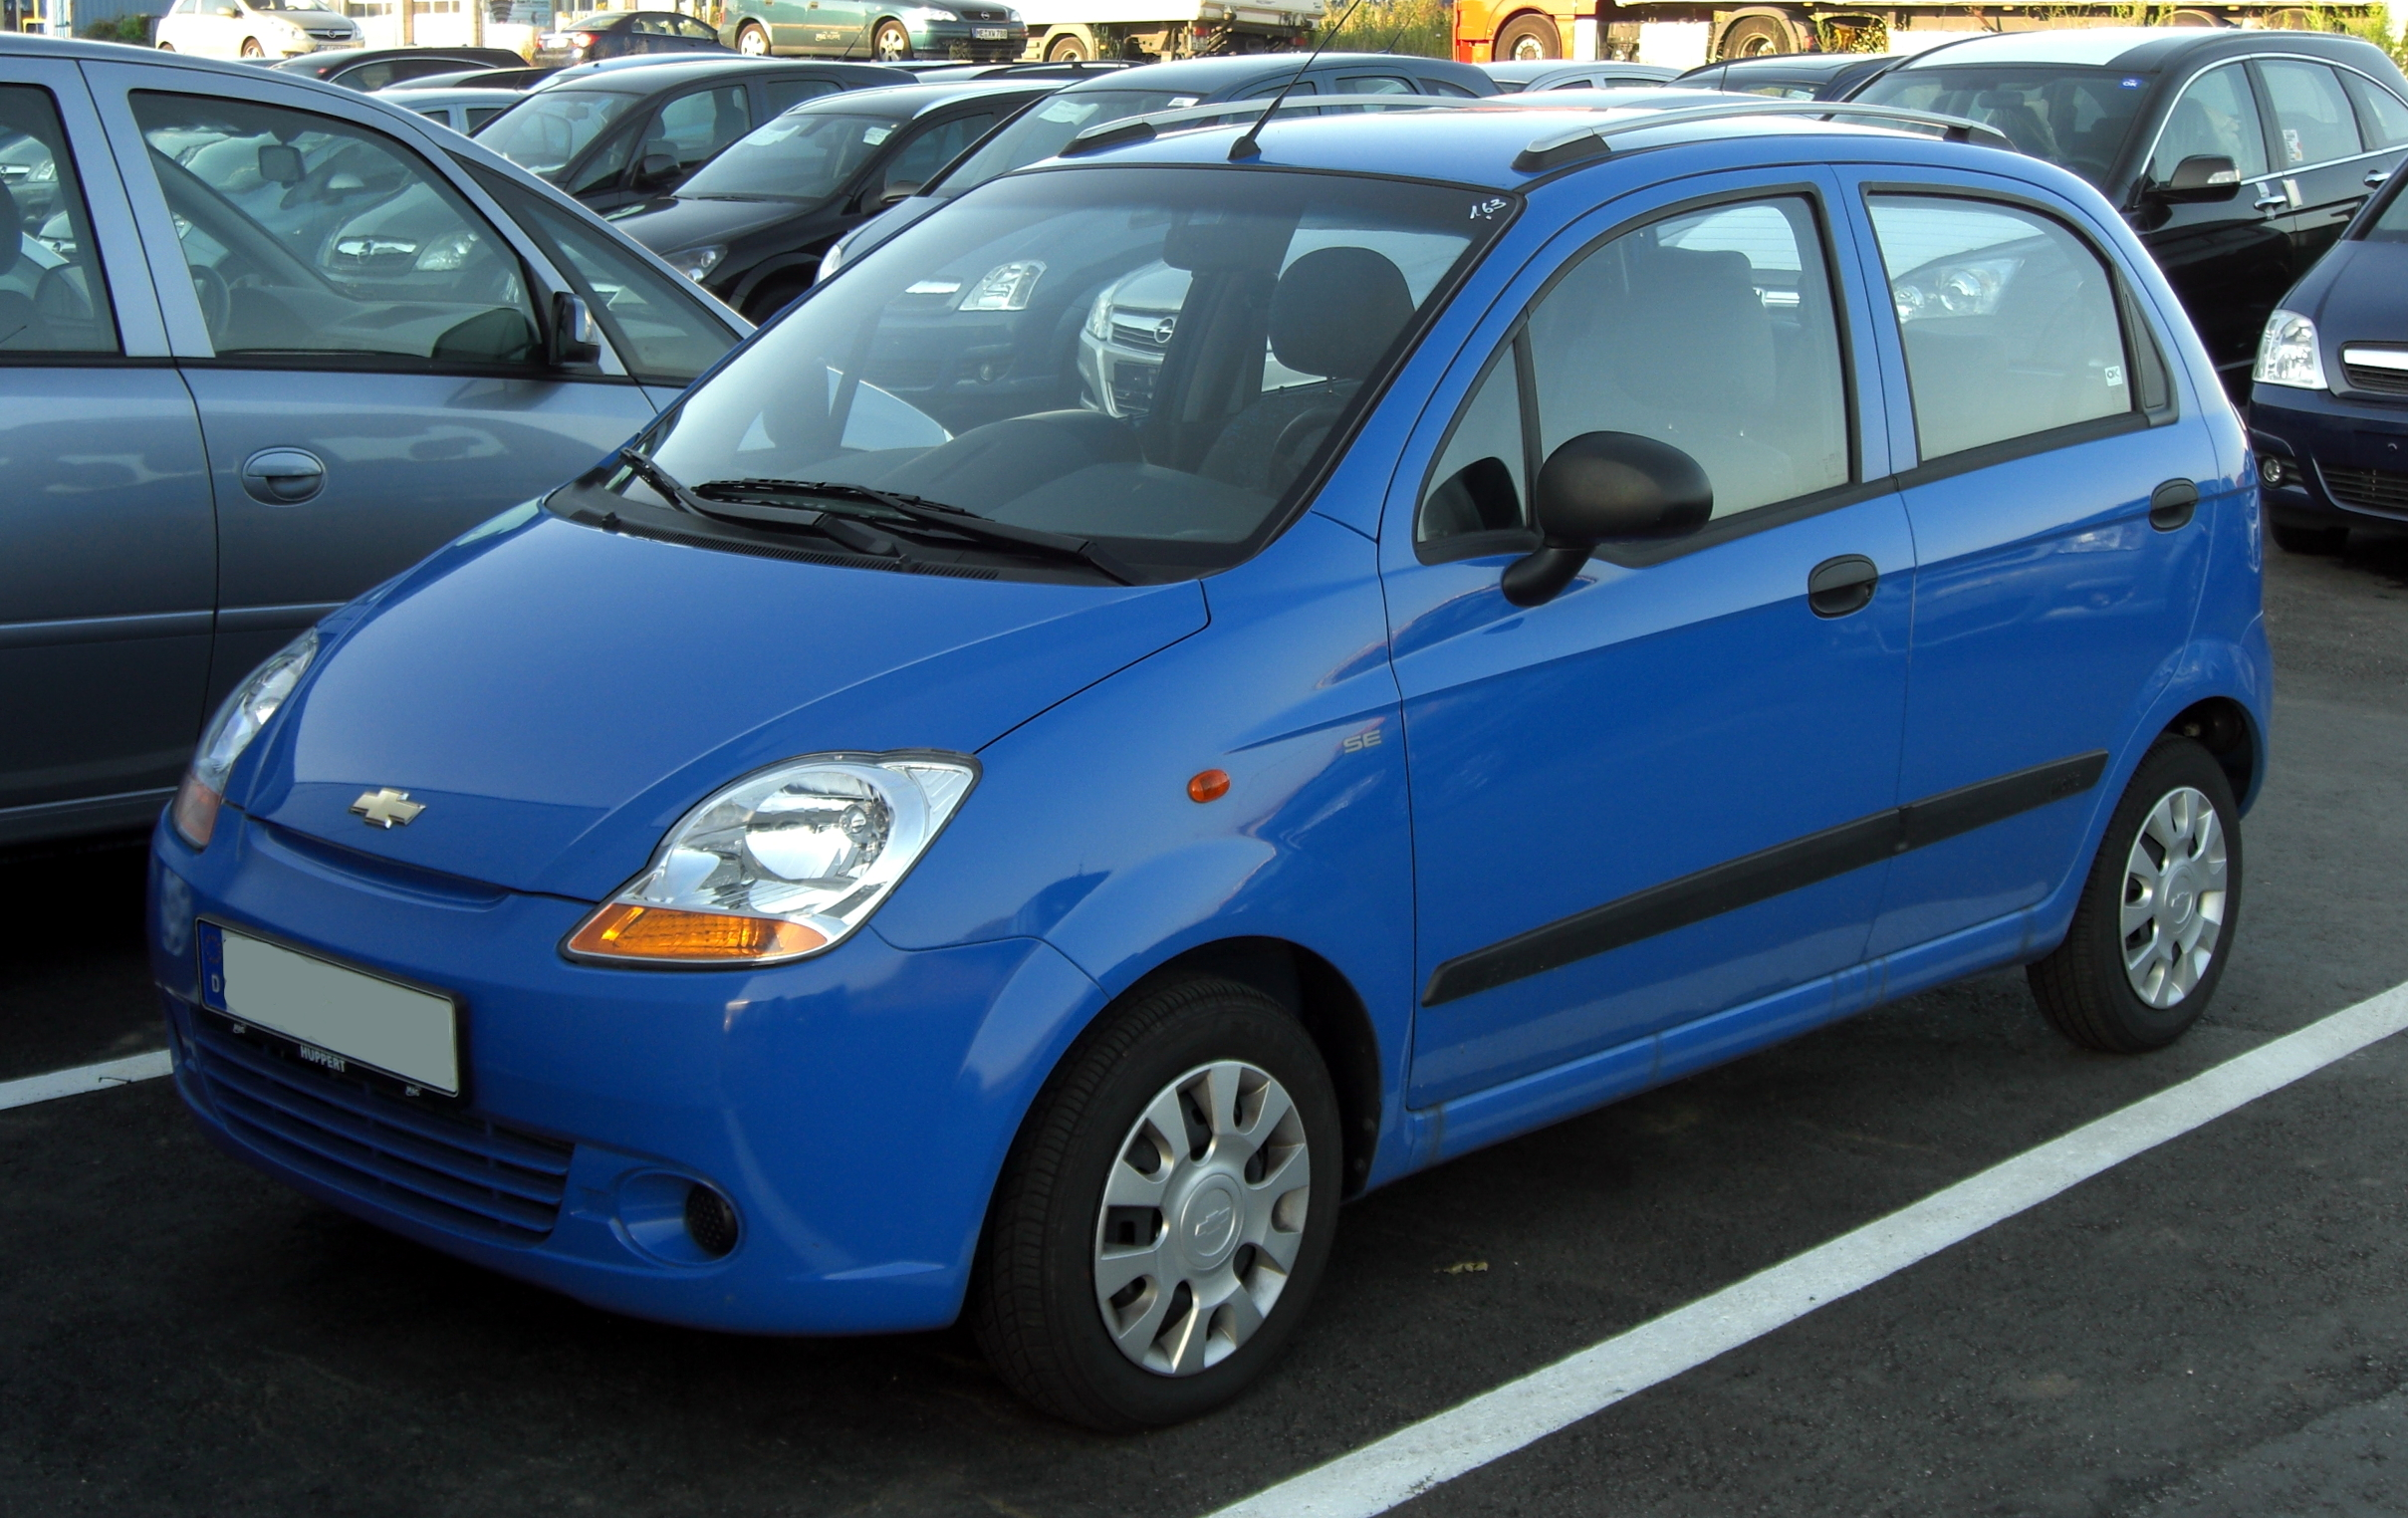 Daewoo Matiz 2009: Review, Amazing Pictures and Images – Look at